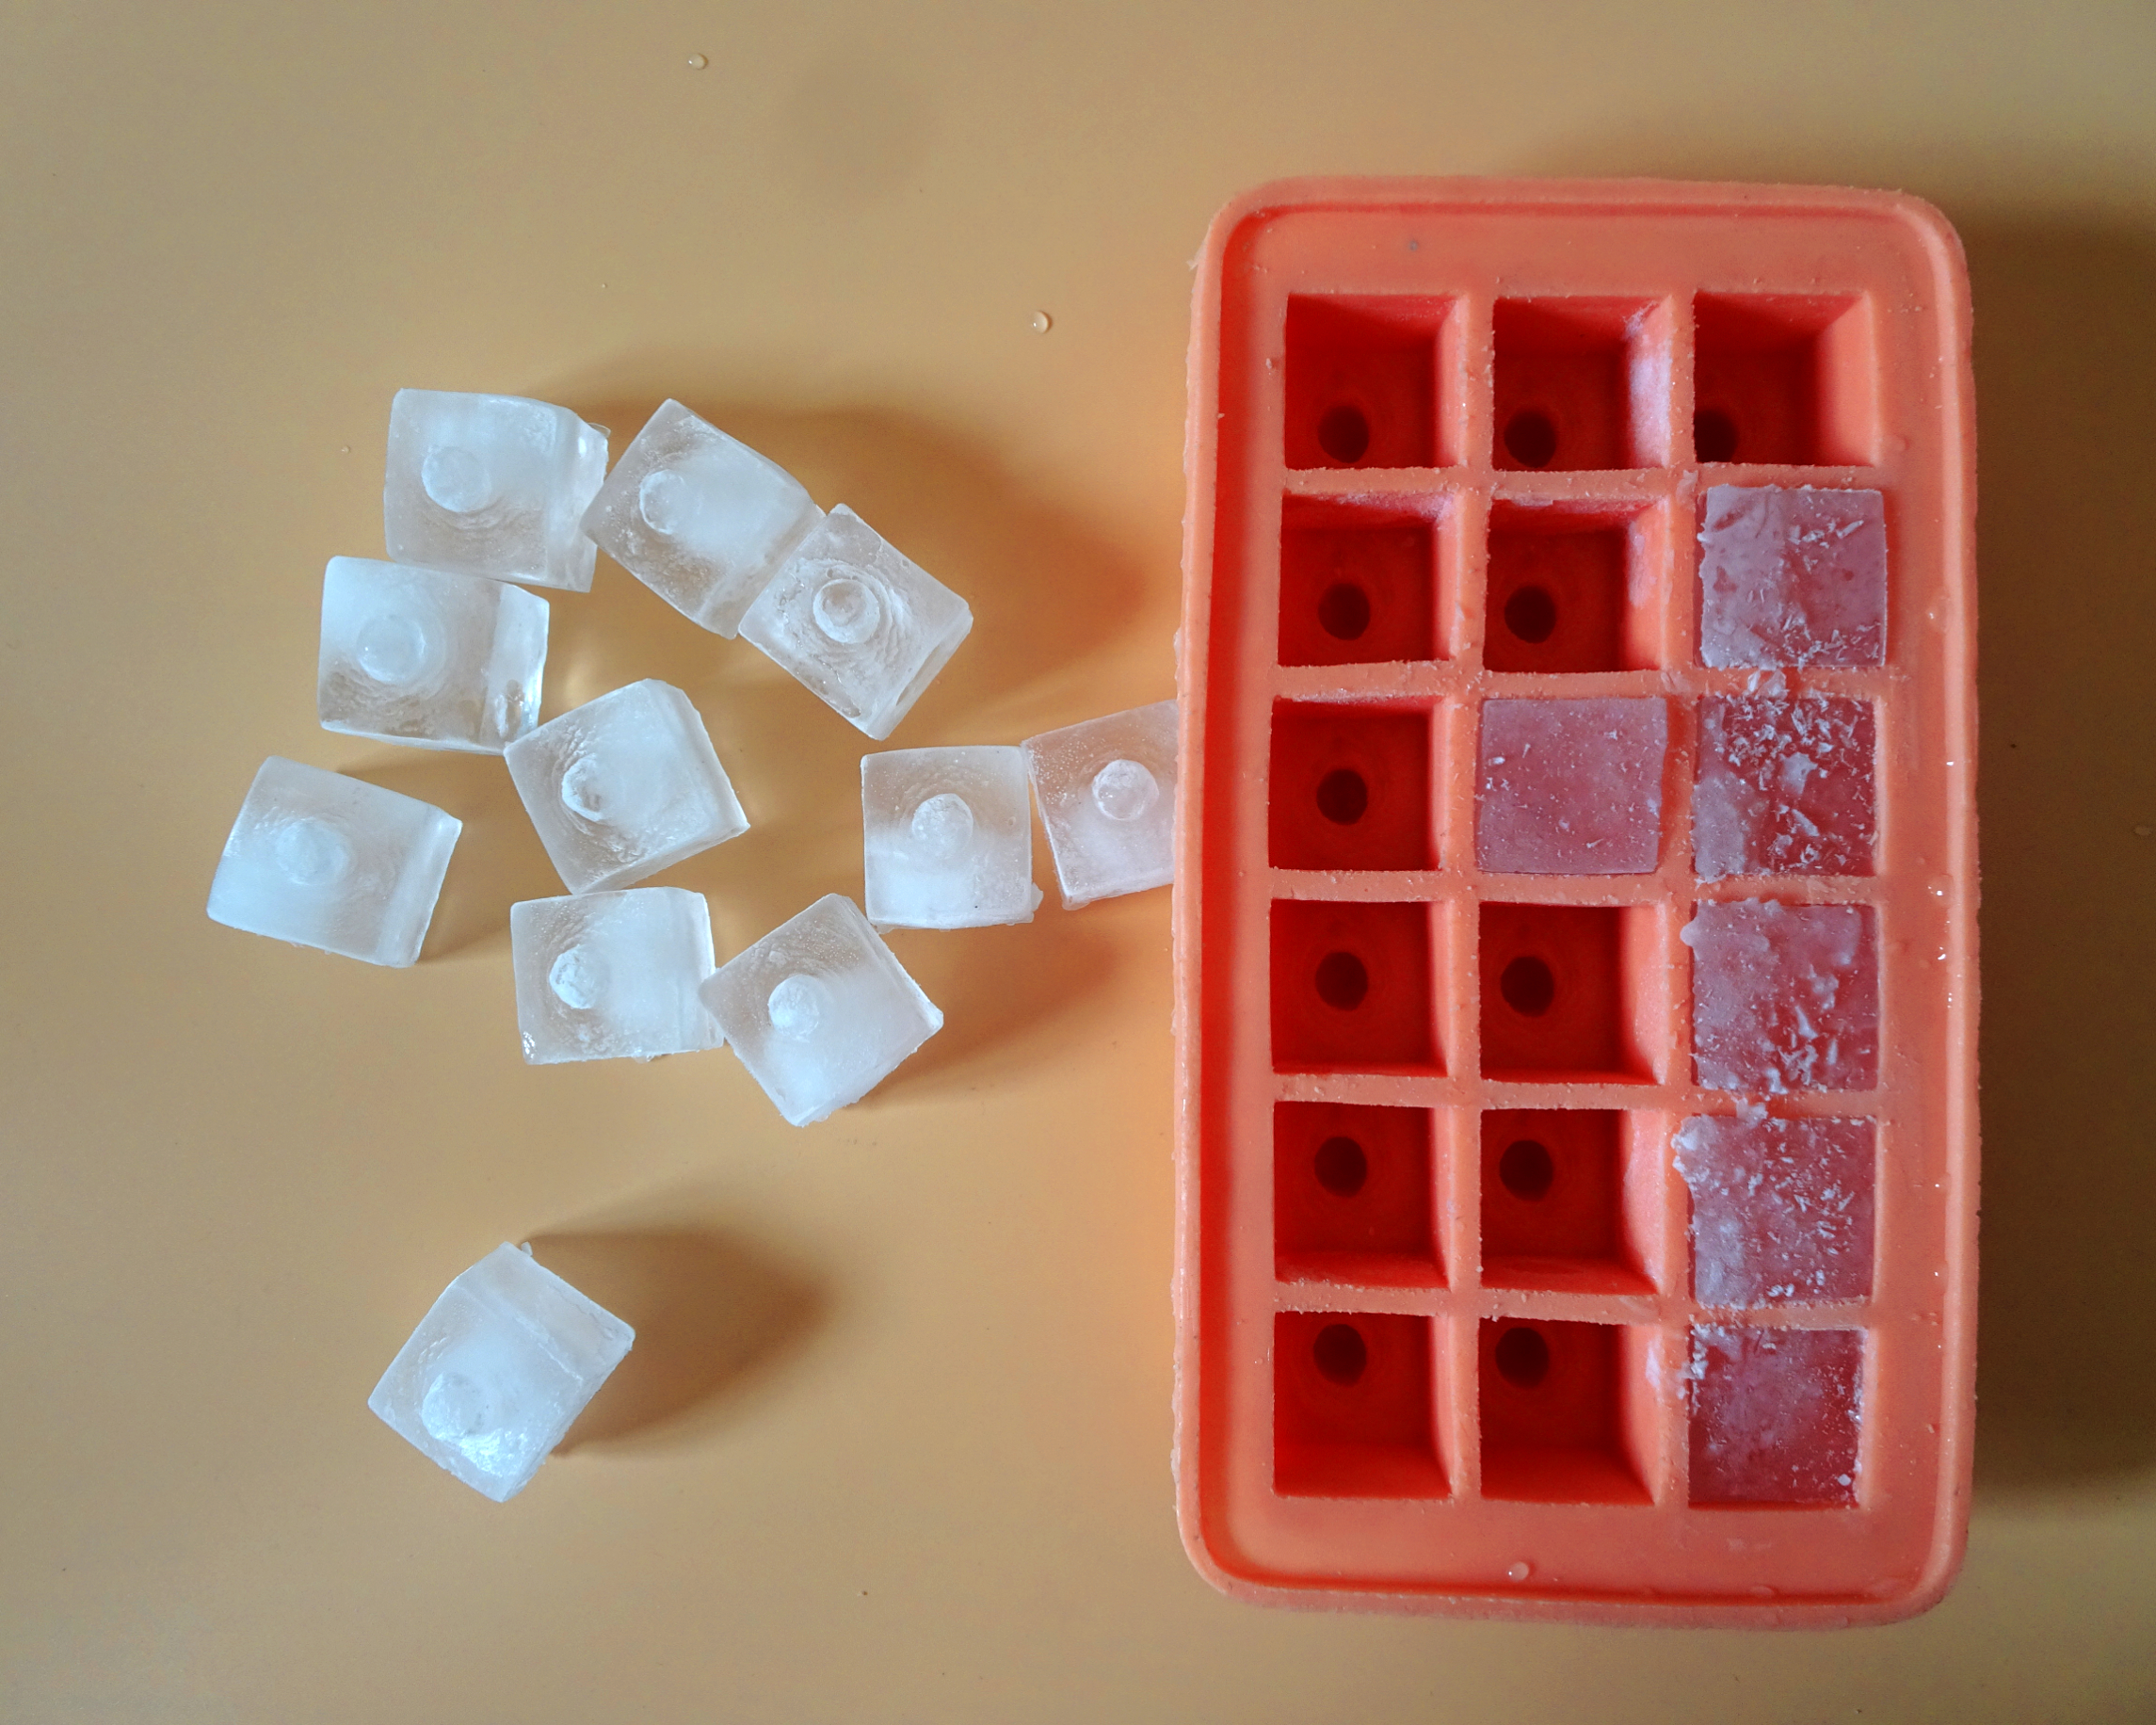 selfmade Ice cube tray design for nipple-shaped ice cubes